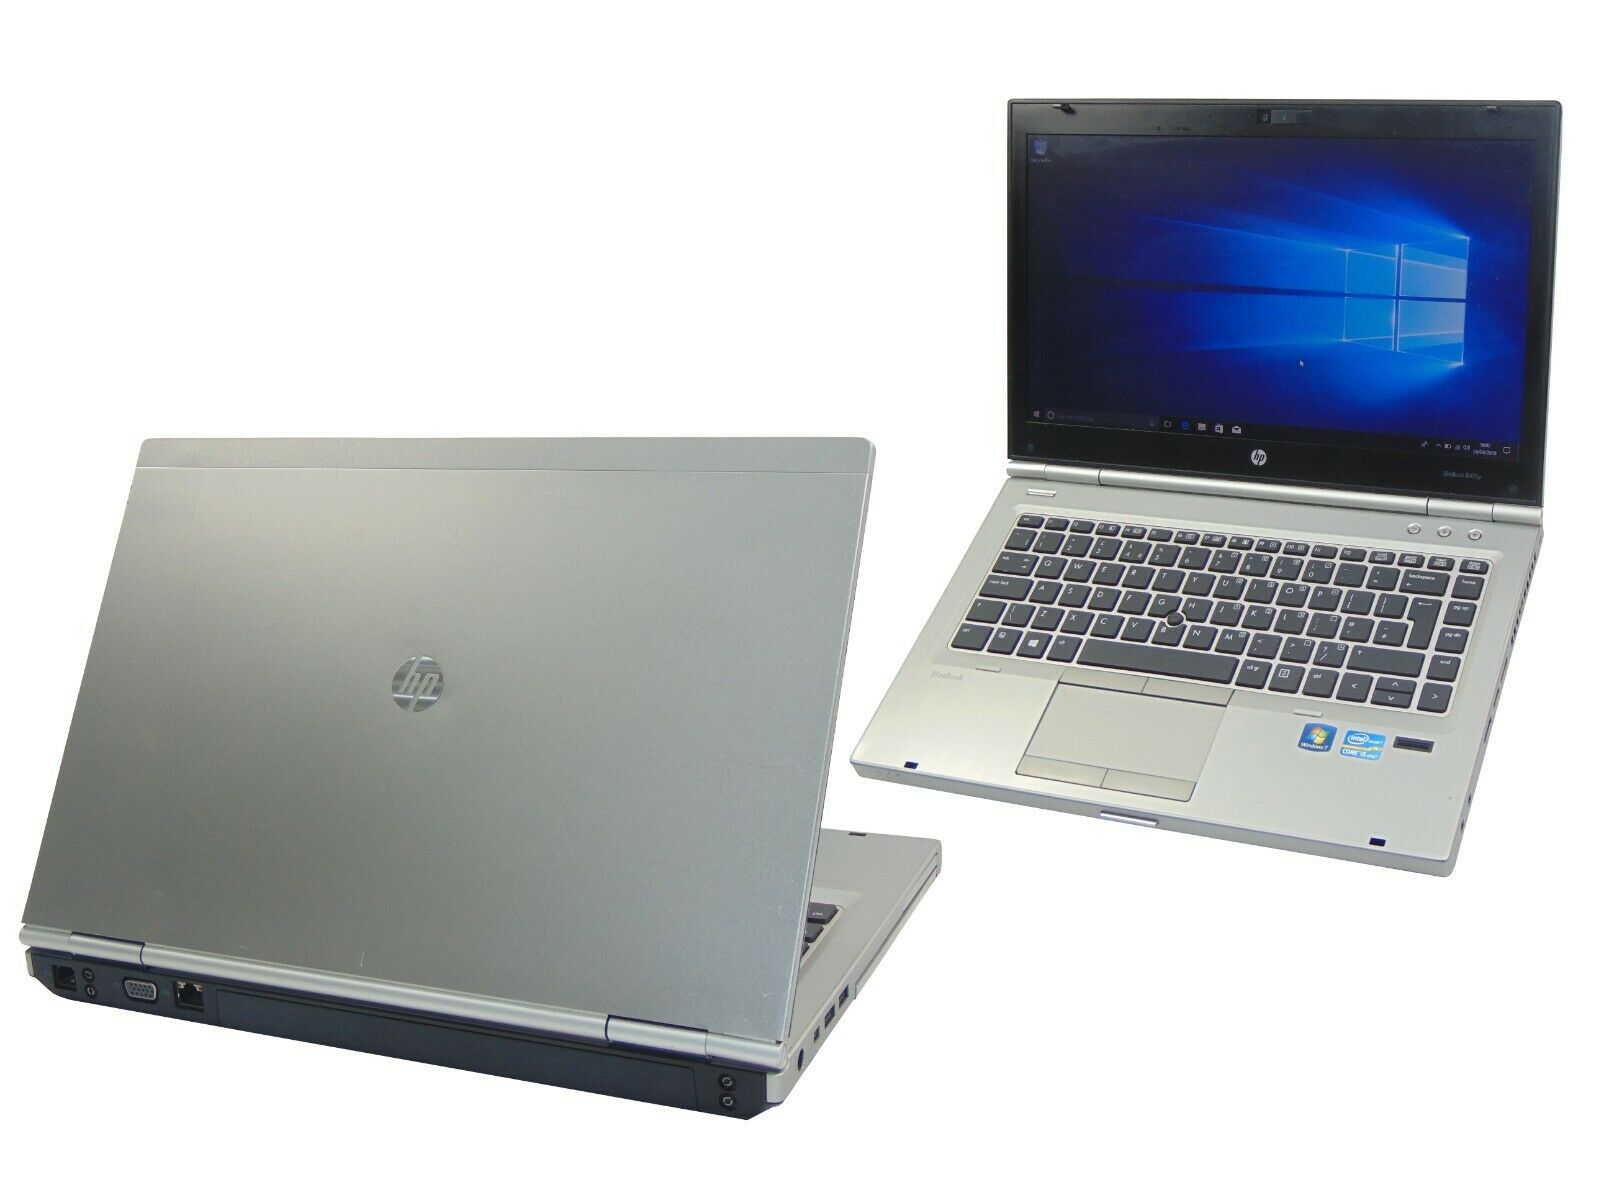 Laptop Windows - HP Laptop Windows 10 EliteBook 8460p Core i5-2520M 2.50GHz 4GB 320GB Warranty